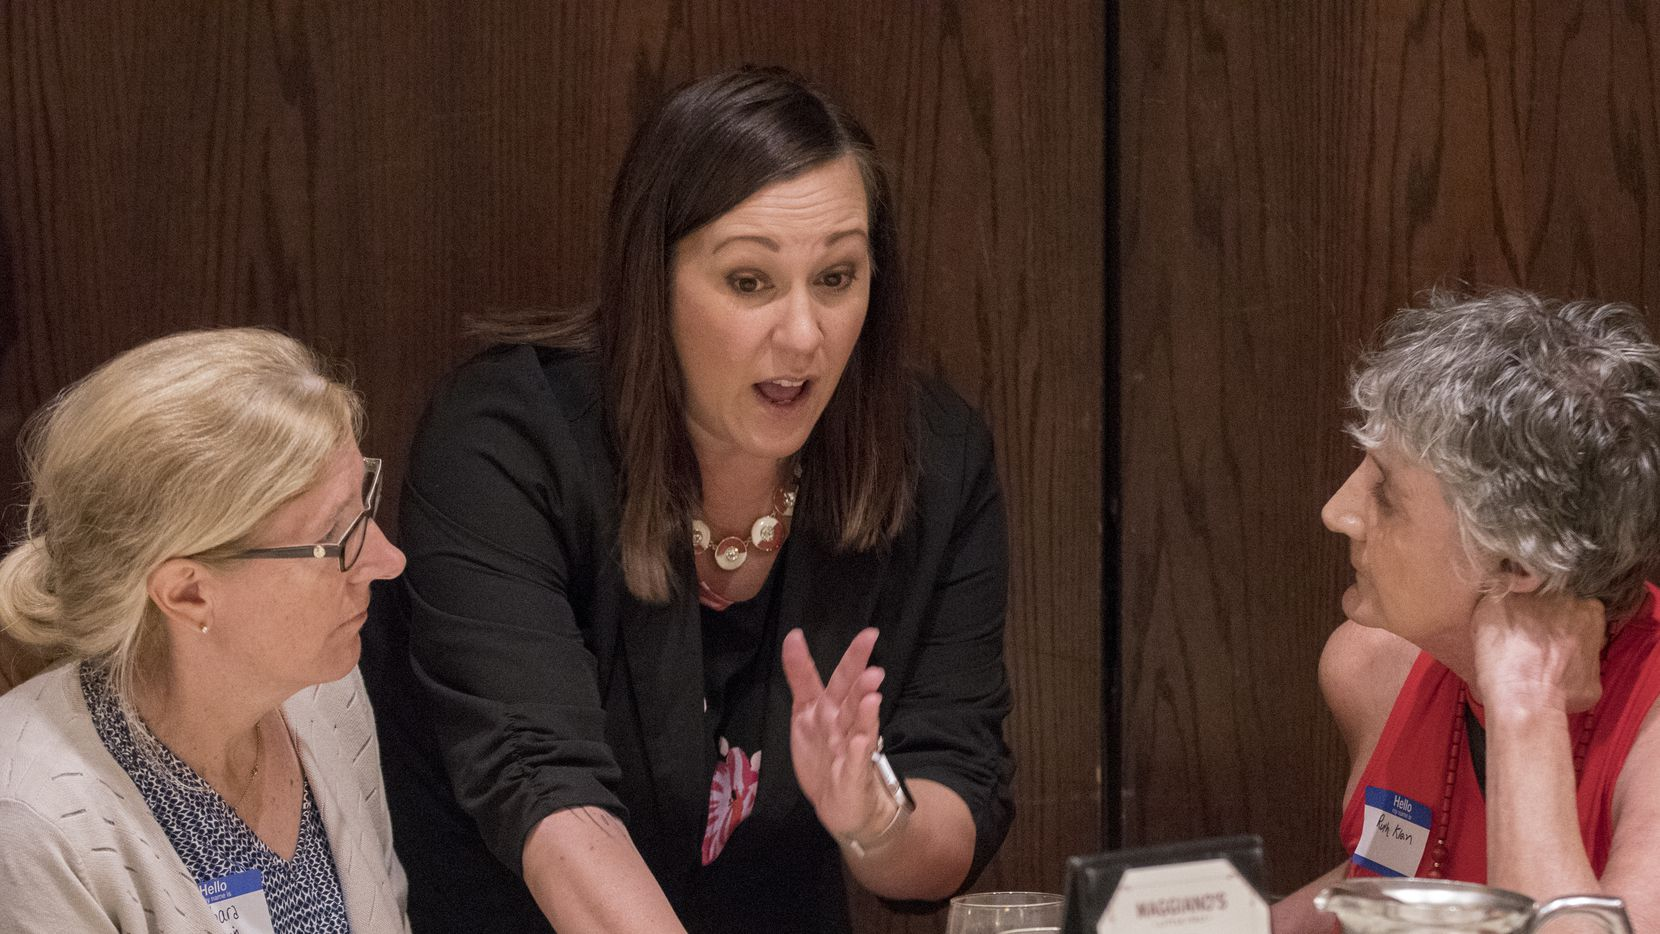 U.S. Senate candidate MJ Hegar speaks with attendees at the Dallas County Democratic Party luncheon where she was a guest speaker on July 24, 2019, at Maggiano's Little Italy restaurant at Northpark Center in Dallas.